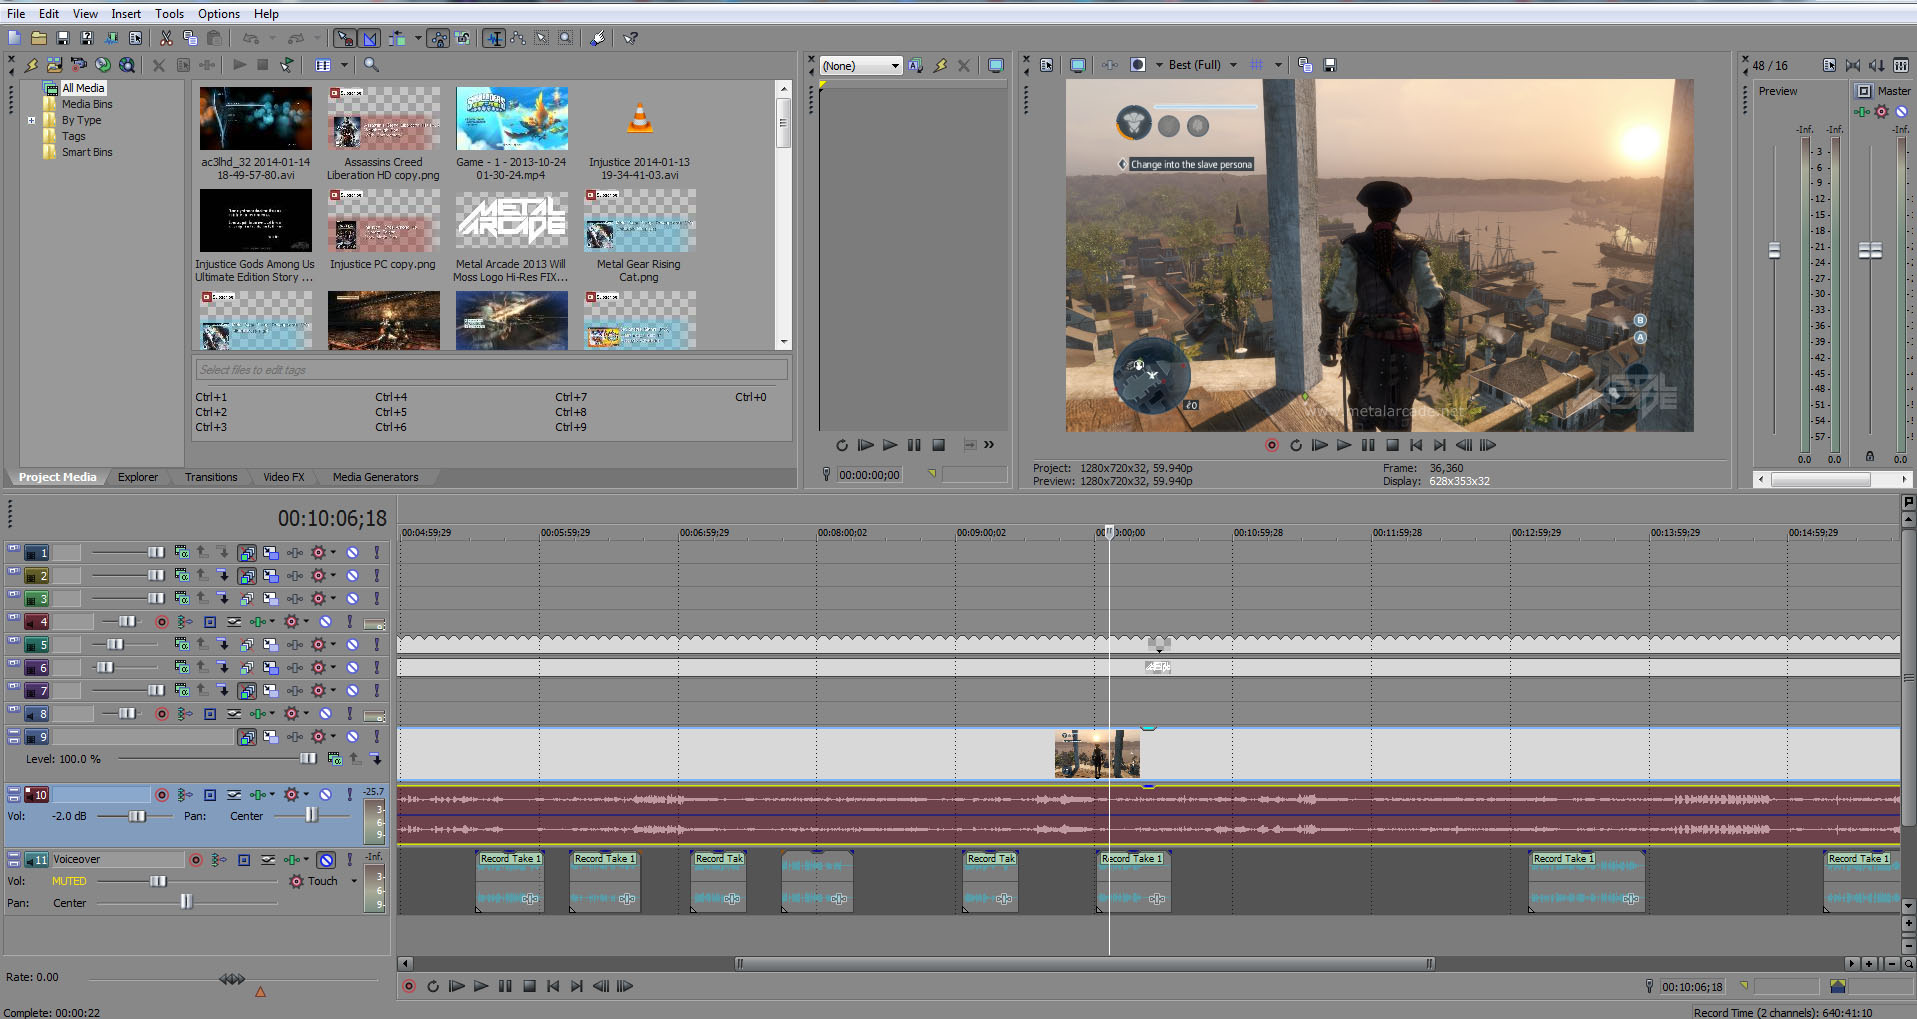 Sony Vegas Pro 11-12 Serial Number Crack Keygen Free